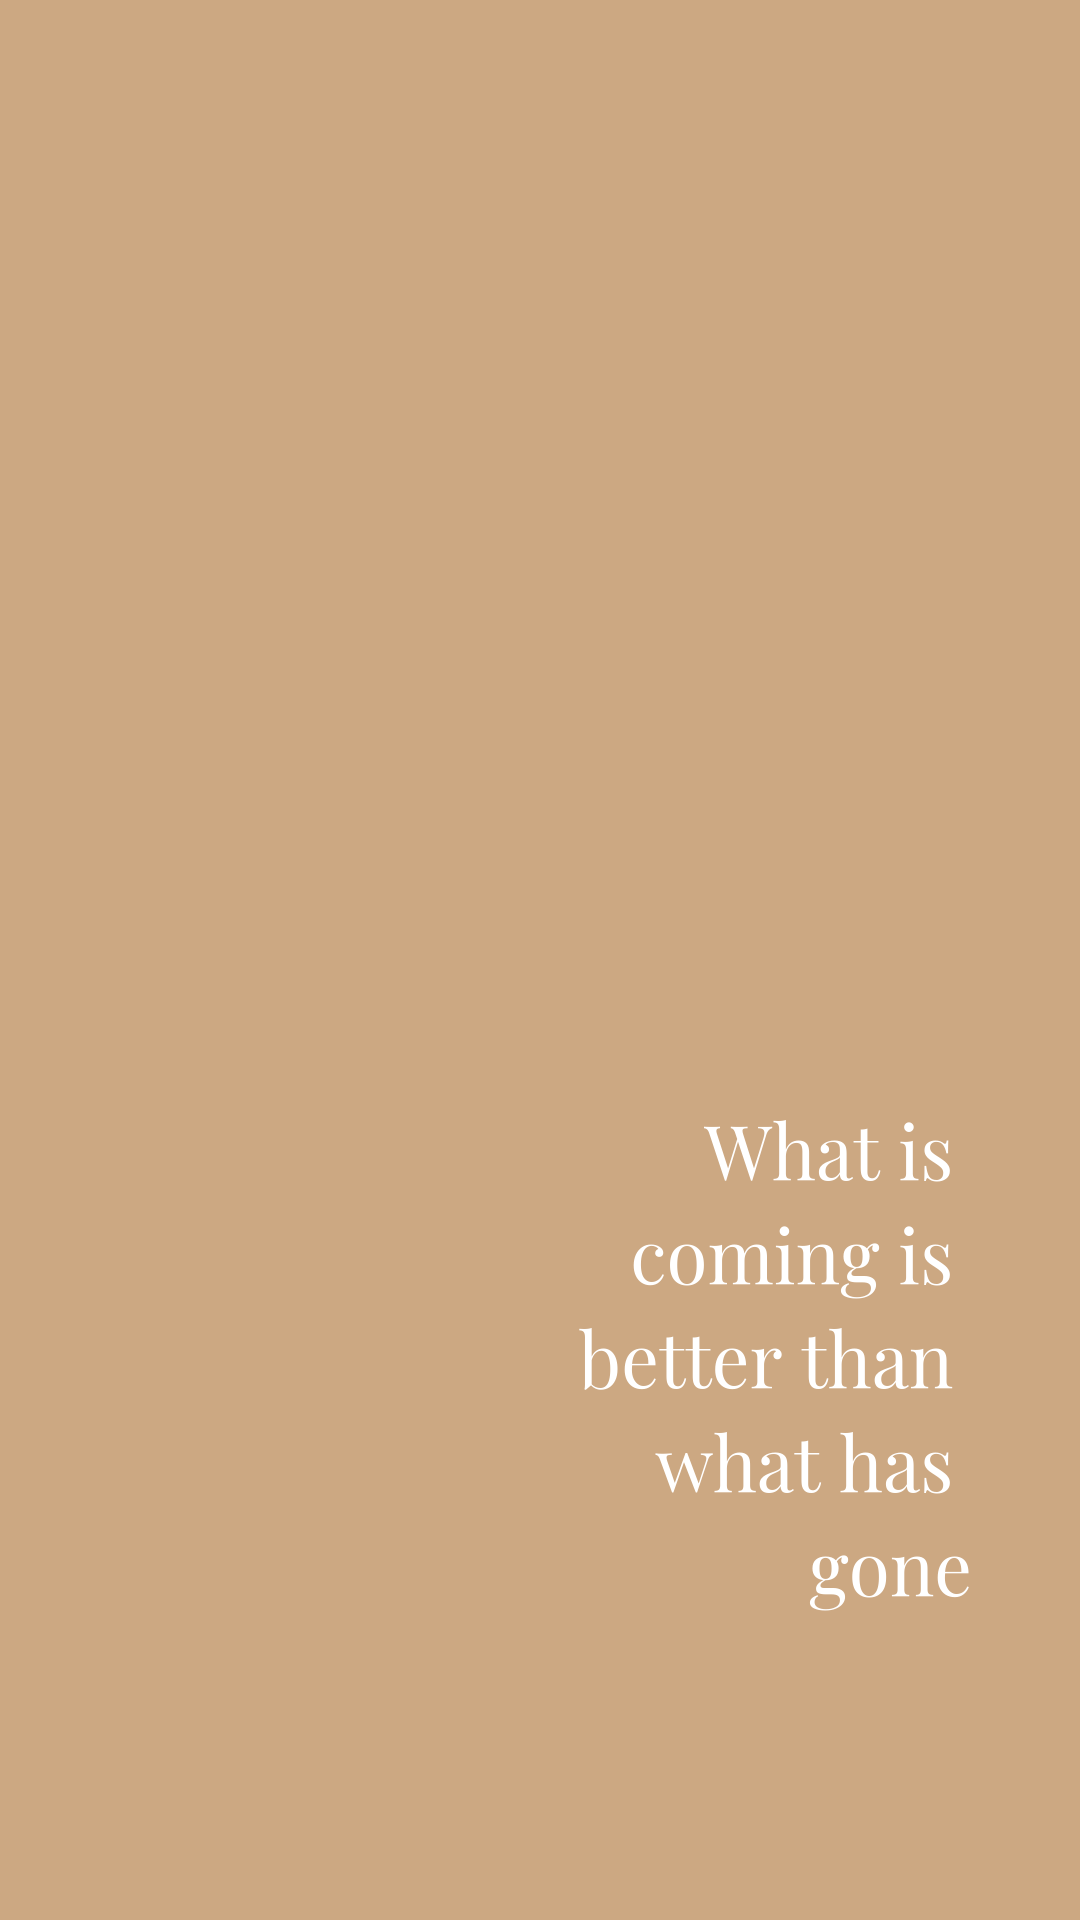 What is Coming is Better Than What Has Gone | Motivational, Inspiring Quotes | Free Phone Background | Miranda Schroeder Blog